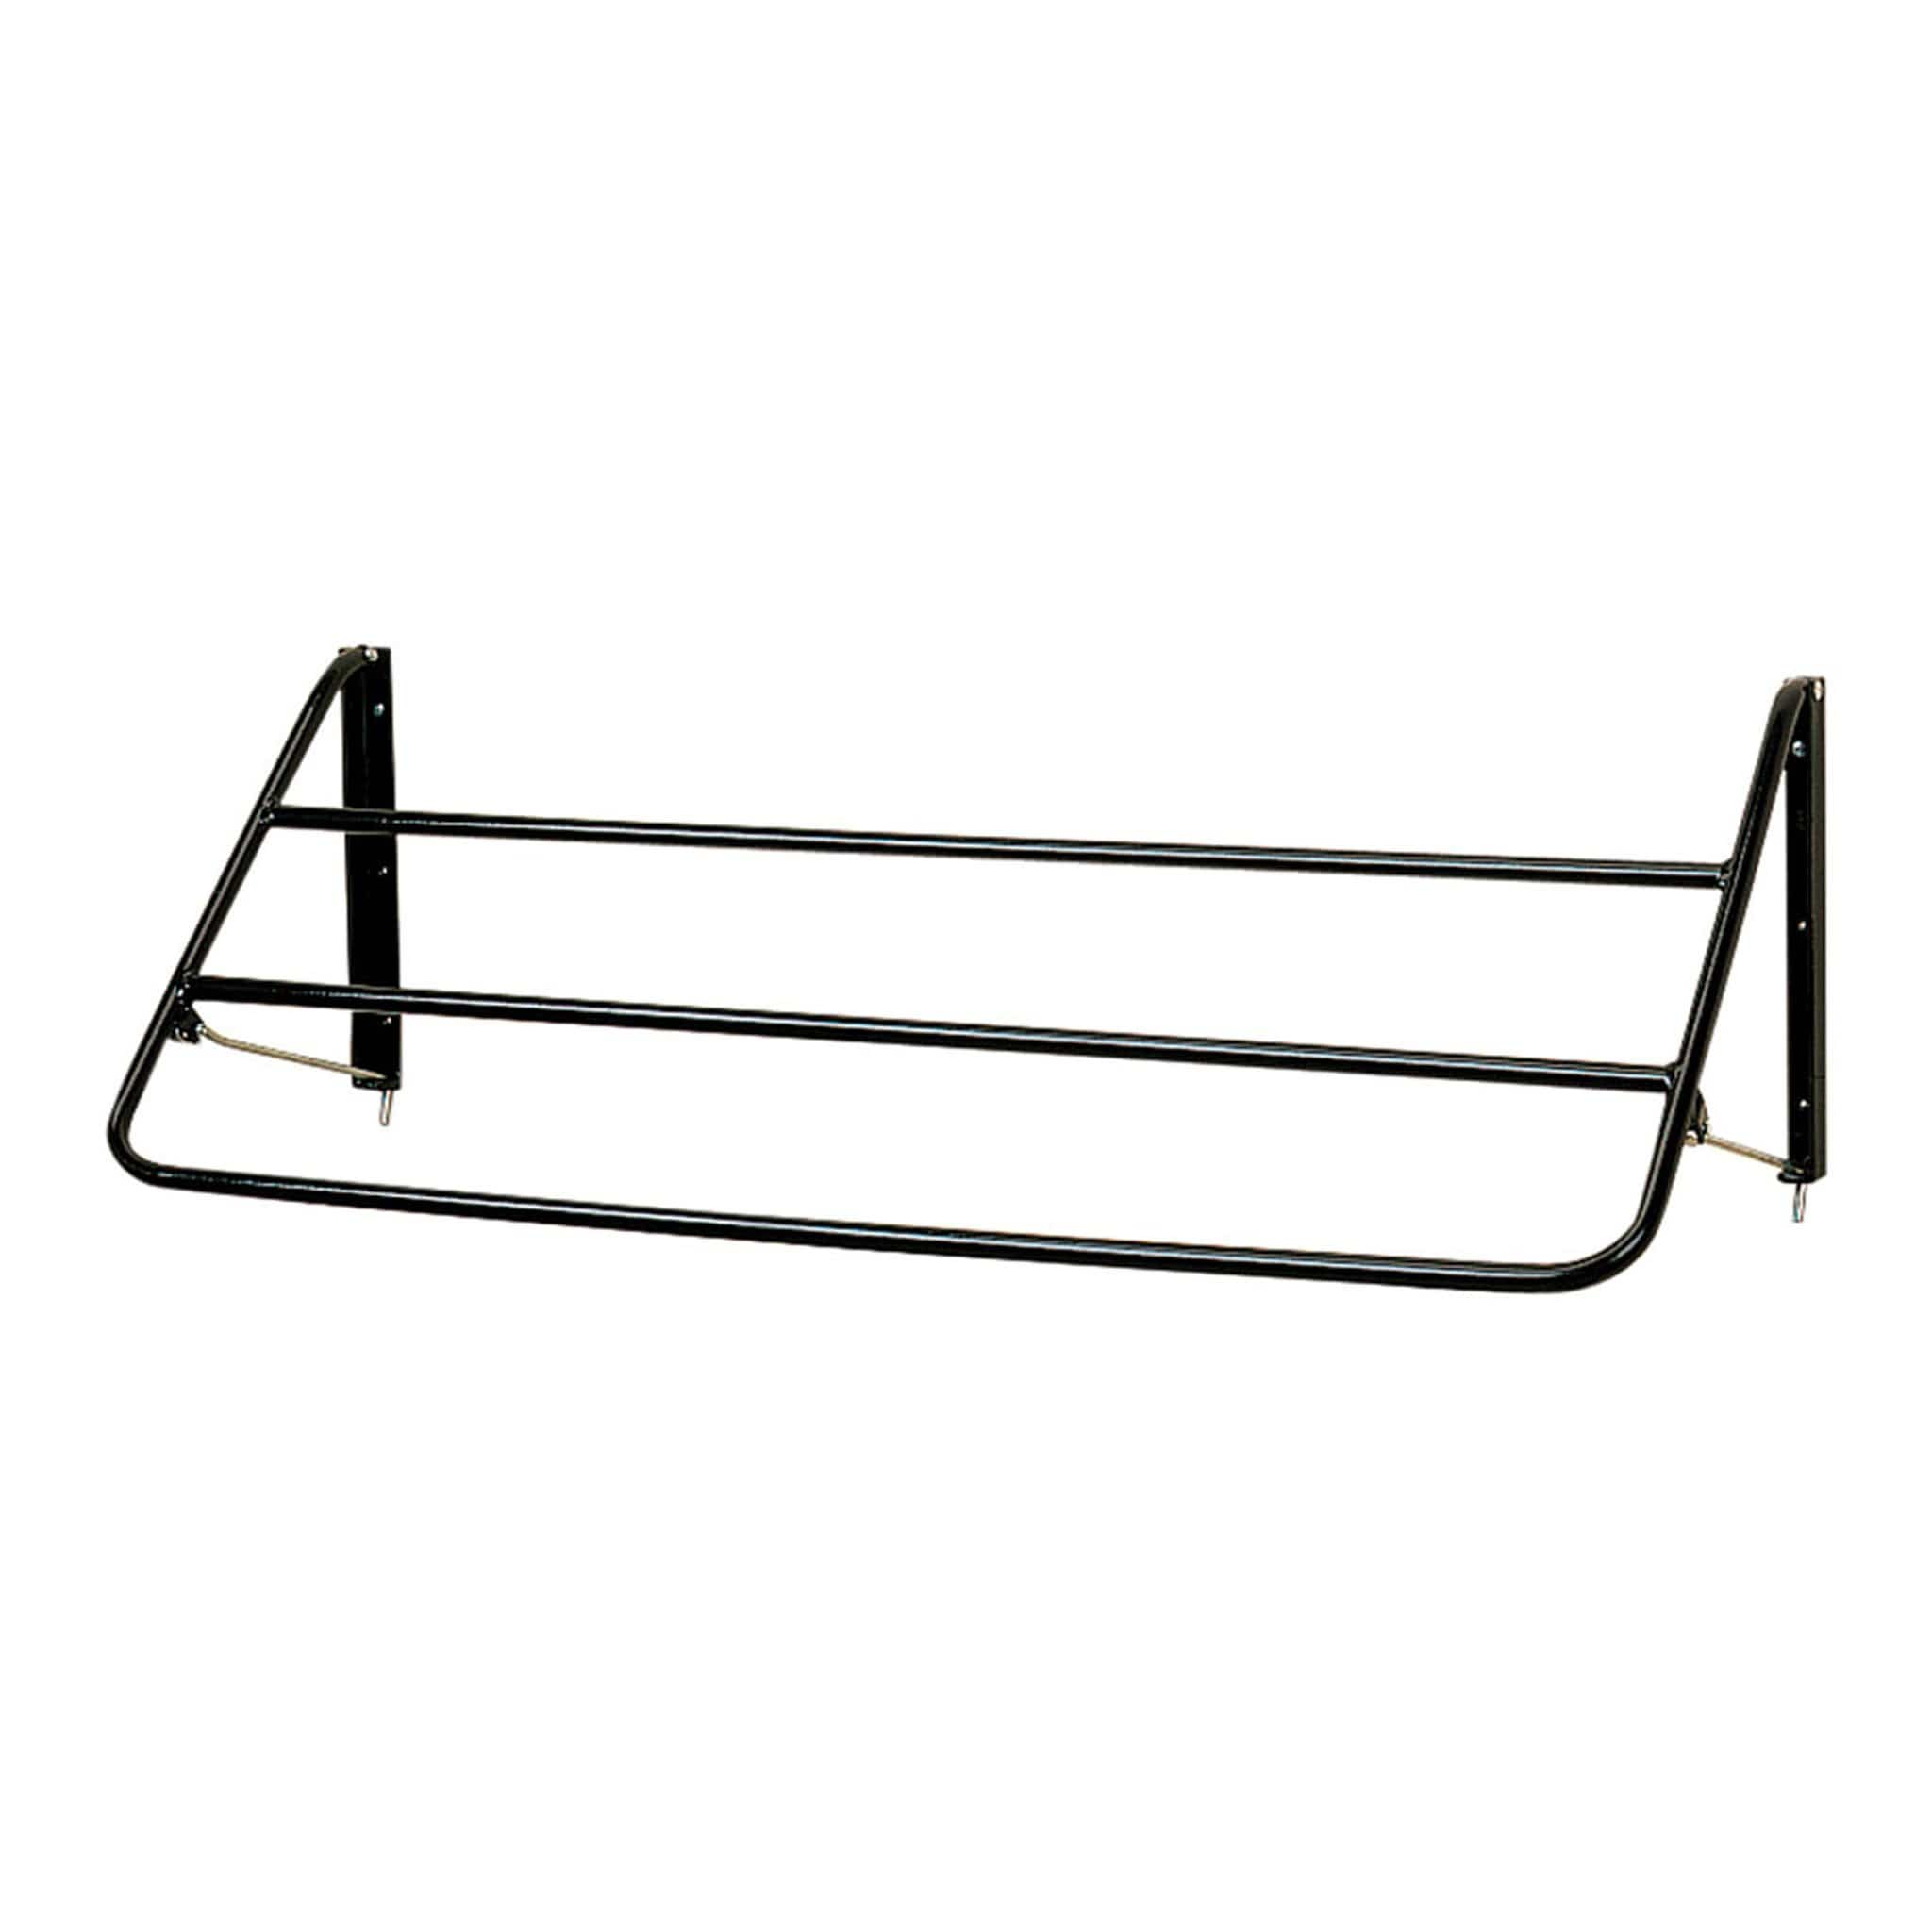 Stubbs Collapsible Rug Rail